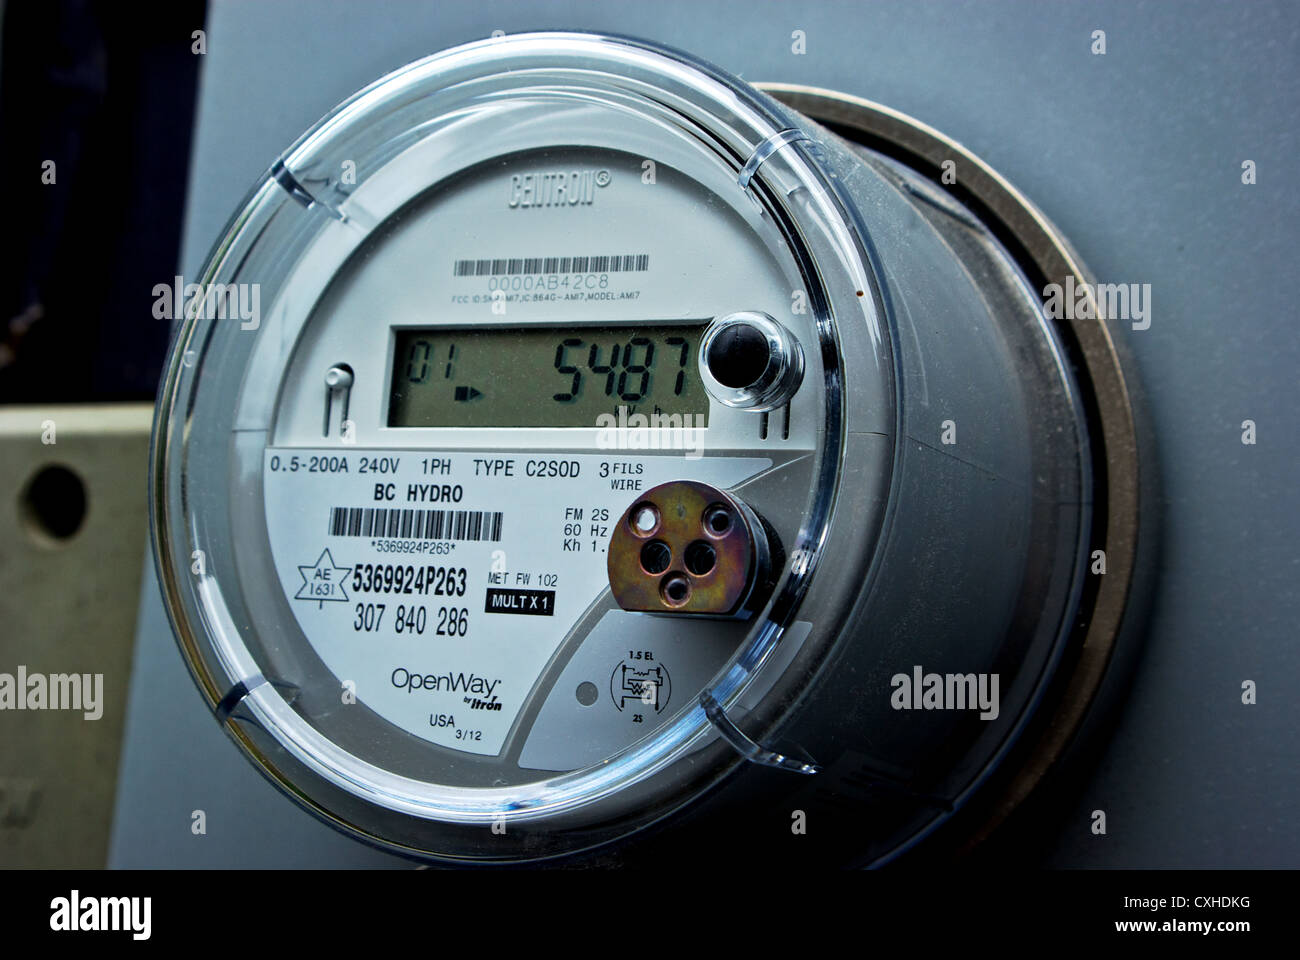 electricity meter digital stock photos electricity meter digital centron c1s digital solid state wireless transmission household electricity use smart meter bc hydro stock